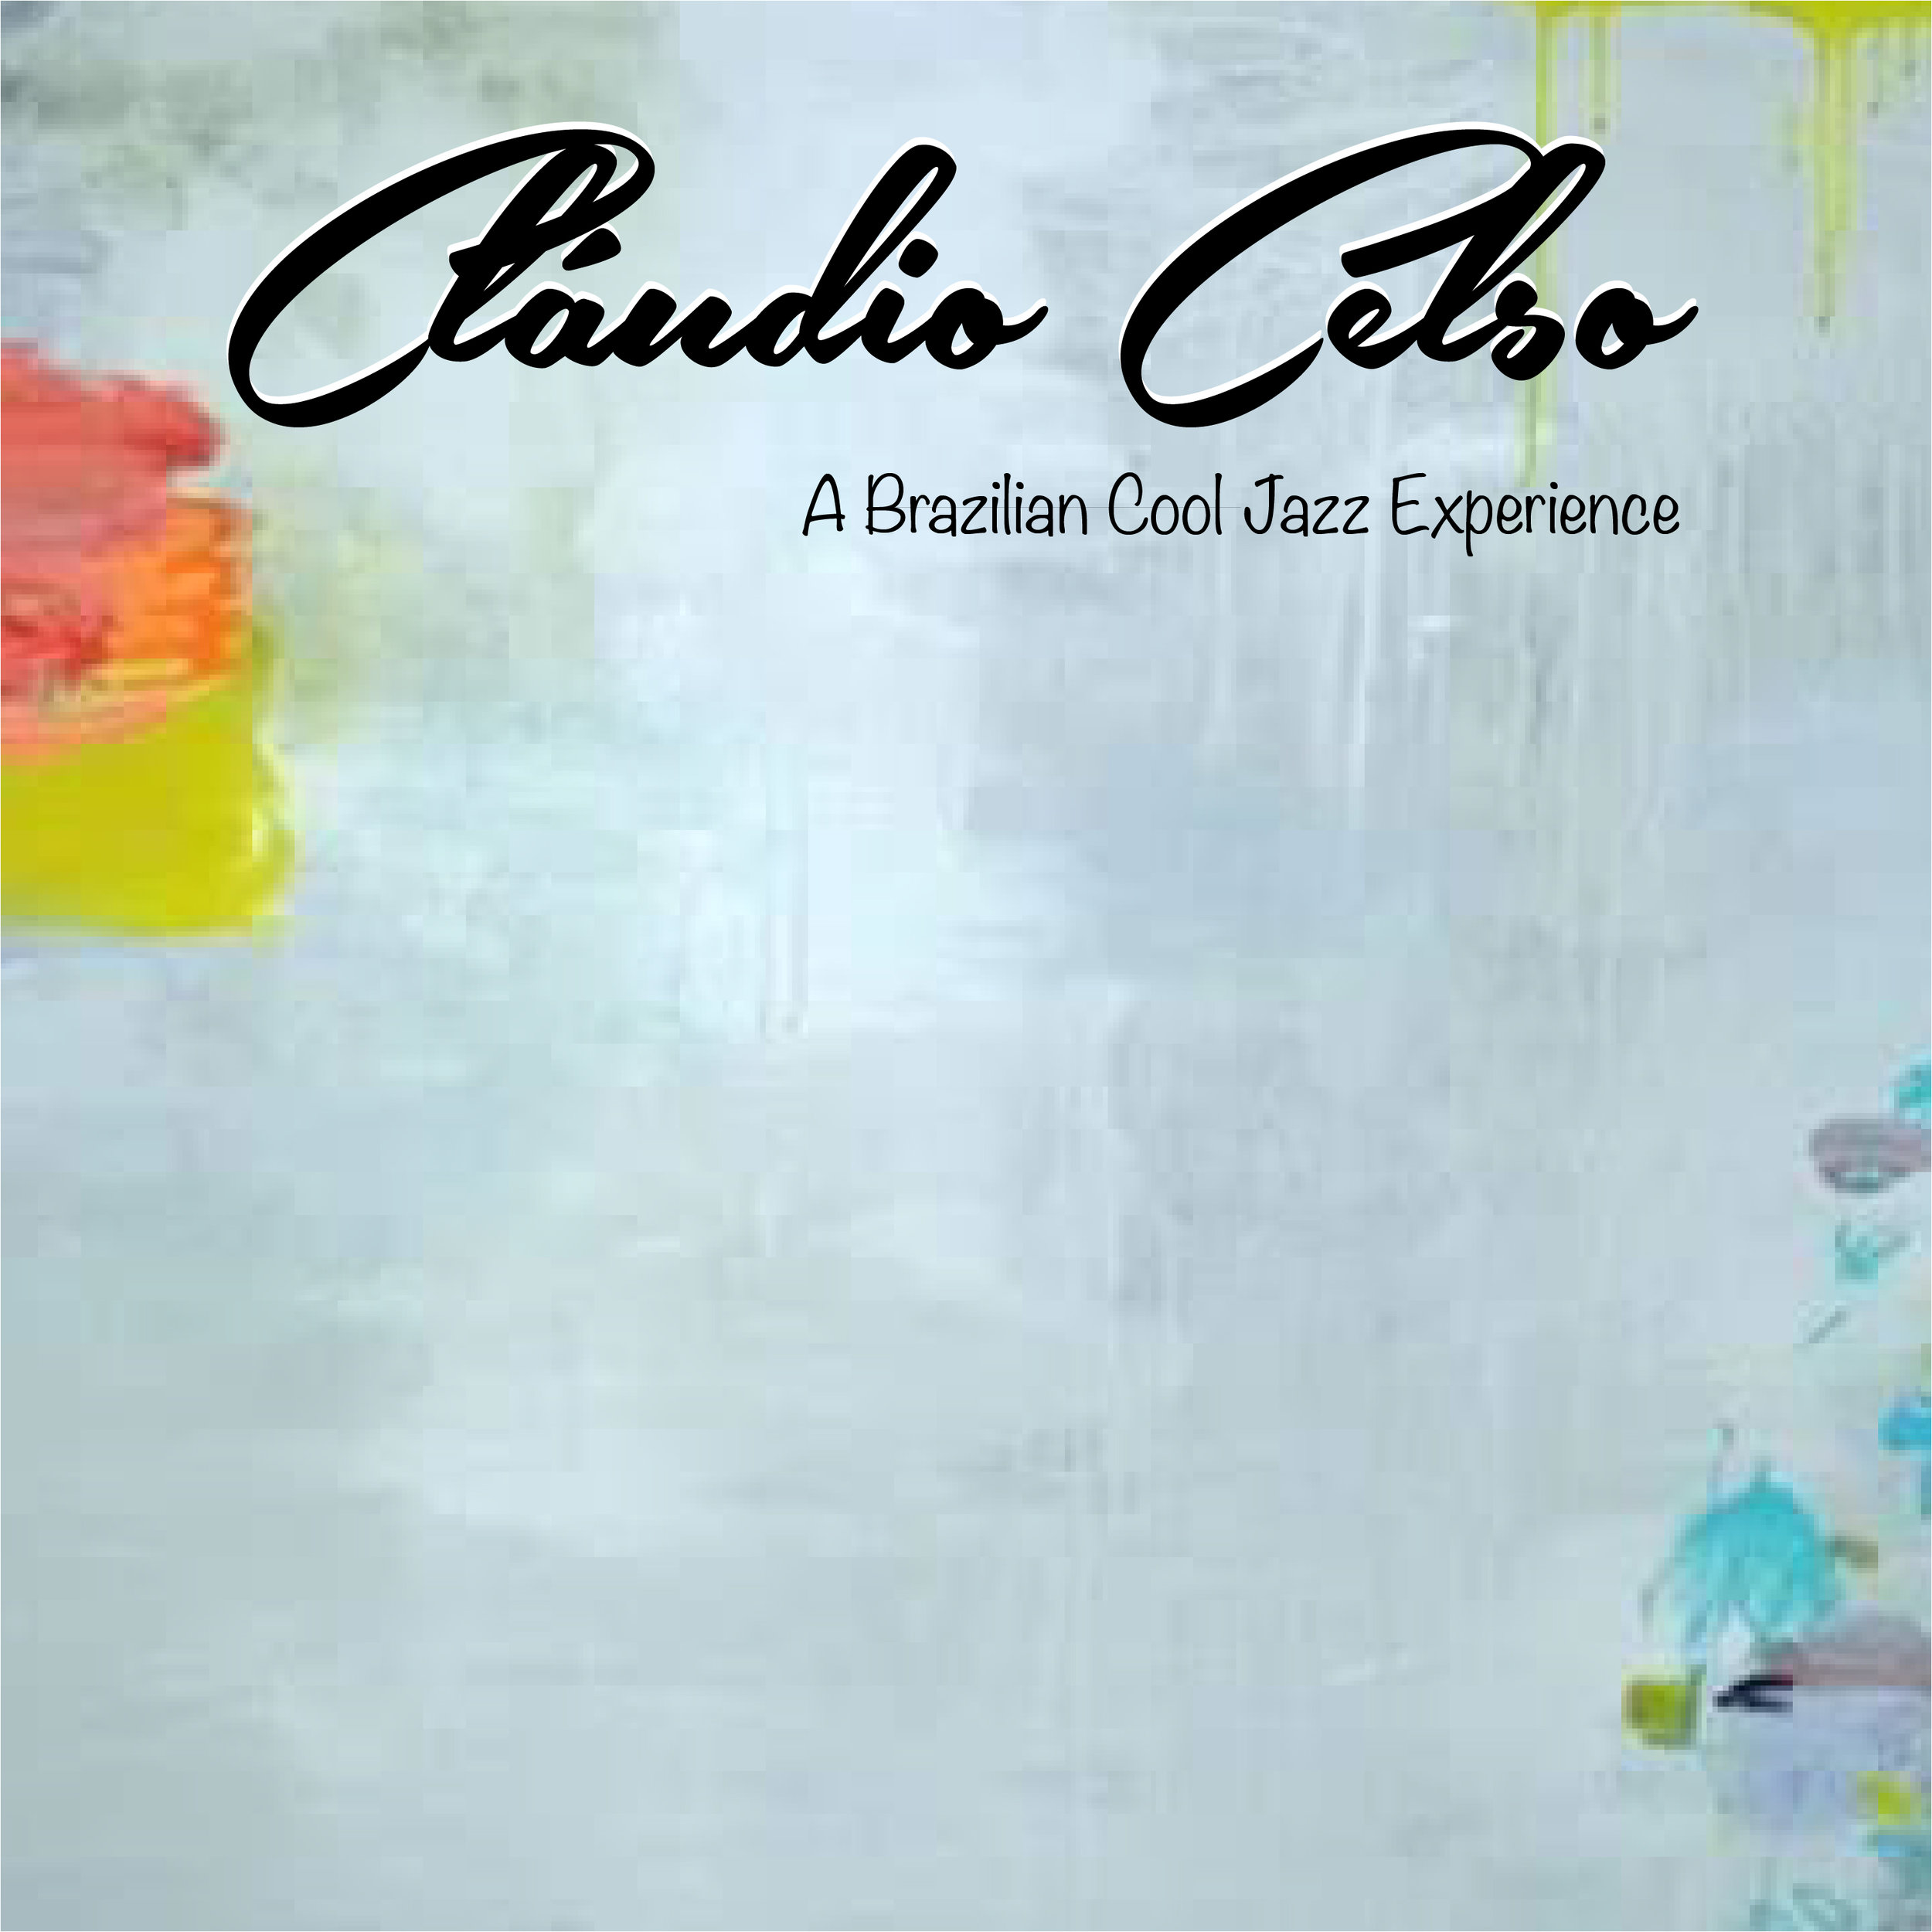 Artist; Cláudio Celso release EP  A Brazilian Cool Jazz Experience  Originally recorded at Estudio Trilha Certa Sao Paulo Brazil in April 2006. Producer - Tuco Freire Recorded and mixed by Homero Lotito  Re-Recorded and remixed by Manny Monteiro at CD Audio Studios Sao Paulo Brazil in October 2018.  Producers Manny Monteiro and Tuco Freire. With additional musicians: Arthur Maia - Bass Manny Monteiro - Drums  Remastered by Frank Miret March 2019 Cover by Frank Miret  1-Hades (Claudio Celso) Claudio Celso - Guitar Lea Freire - Flute Arthur Maia - Bass Manny Monteiro - Drums Marcelo Maita - Piano  2-Swell ( Claudio Celso) Claudio Celso -Guitar Lea Freire - Flute Arthur Maia - Bass Manny Monteiro - Drums Marcelo Maita - Piano  3-Presente Para Deisy ( Claudio Celso) Claudio Celso - Guitar Arthur Maia -Bass Manny Monteiro - Drums Marcelo Maita - Piano  4-Delfina ( Claudio Celso) Claudio Celso - Guitar Arthur Maia - Bass Manny Monteiro - Drums Maecelo Maita - Piano  GENERAL SUPERVISOR - ALEX COBOS  Claudio Celso +1 (818) 479-1686 http://claudiocelso.com/ https://en.wikipedia.org/wiki/Claudio_Celso https://pt.wikipedia.org/wiki/Claudio_Celso